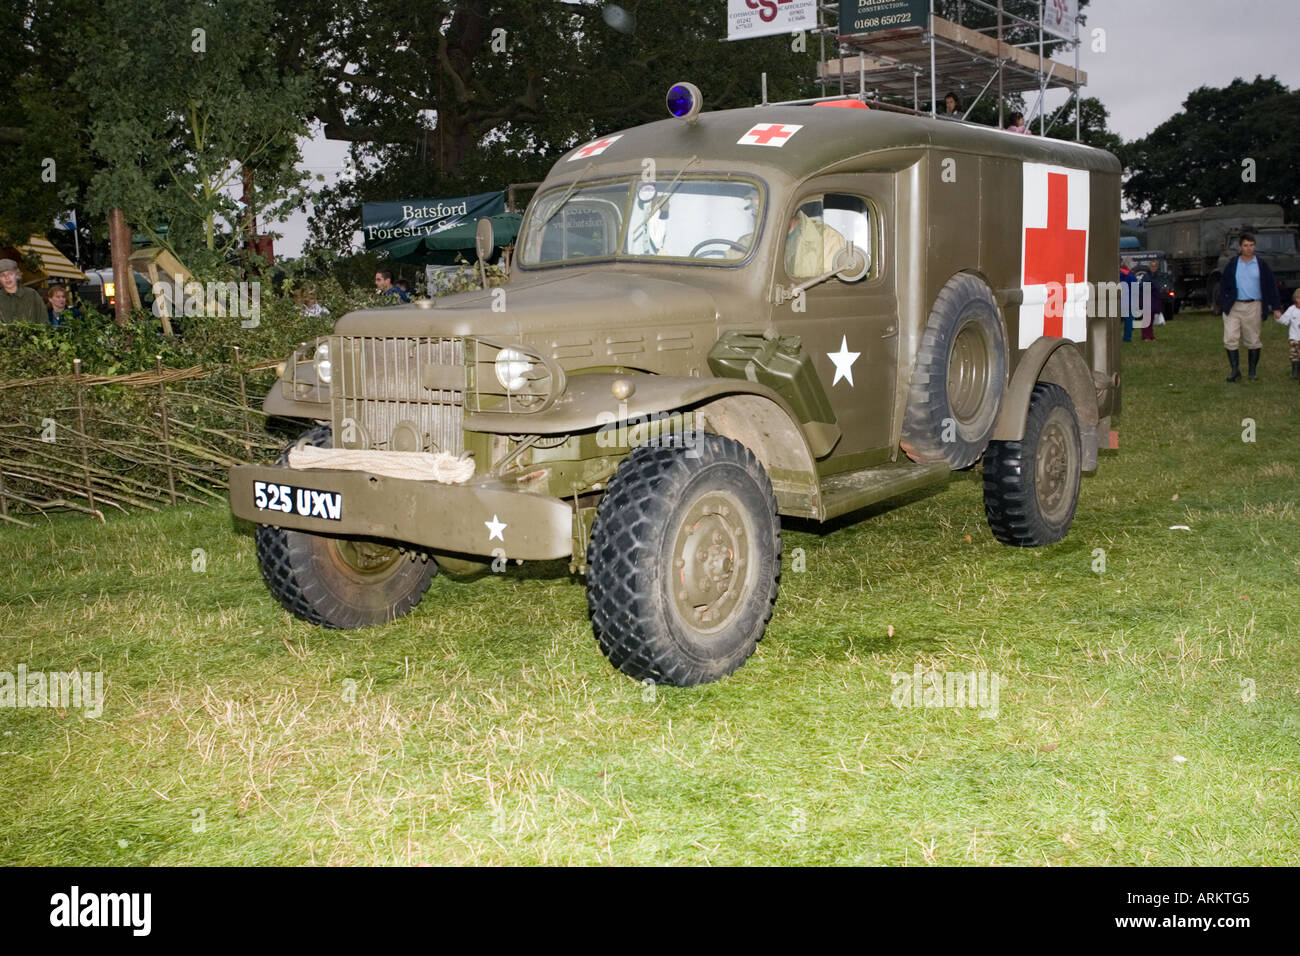 army ambulance stockfotos army ambulance bilder alamy. Black Bedroom Furniture Sets. Home Design Ideas